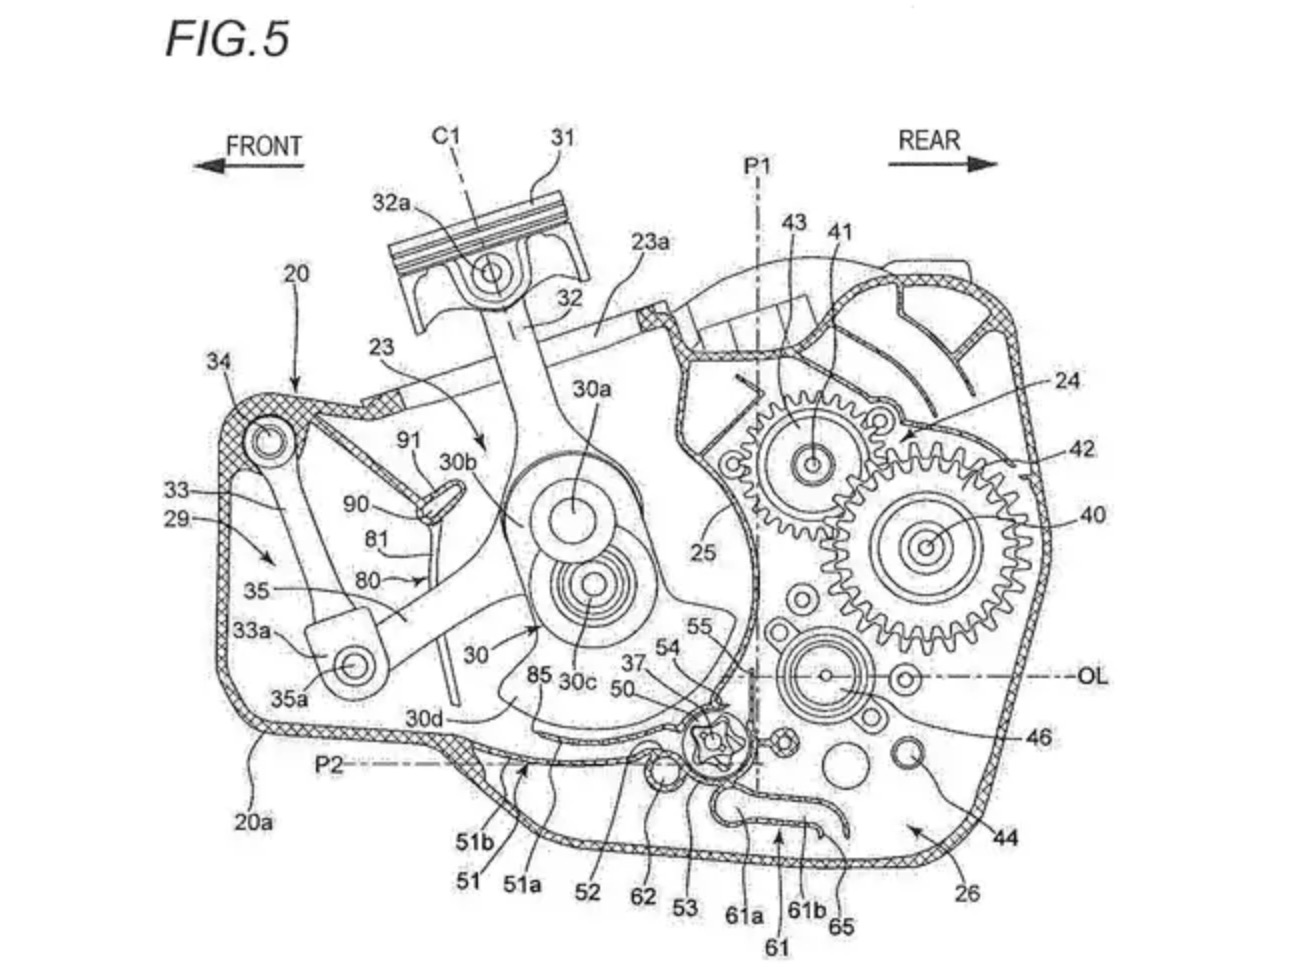 Suzuki S Counterbalanced Single Cylinder Engine Patent